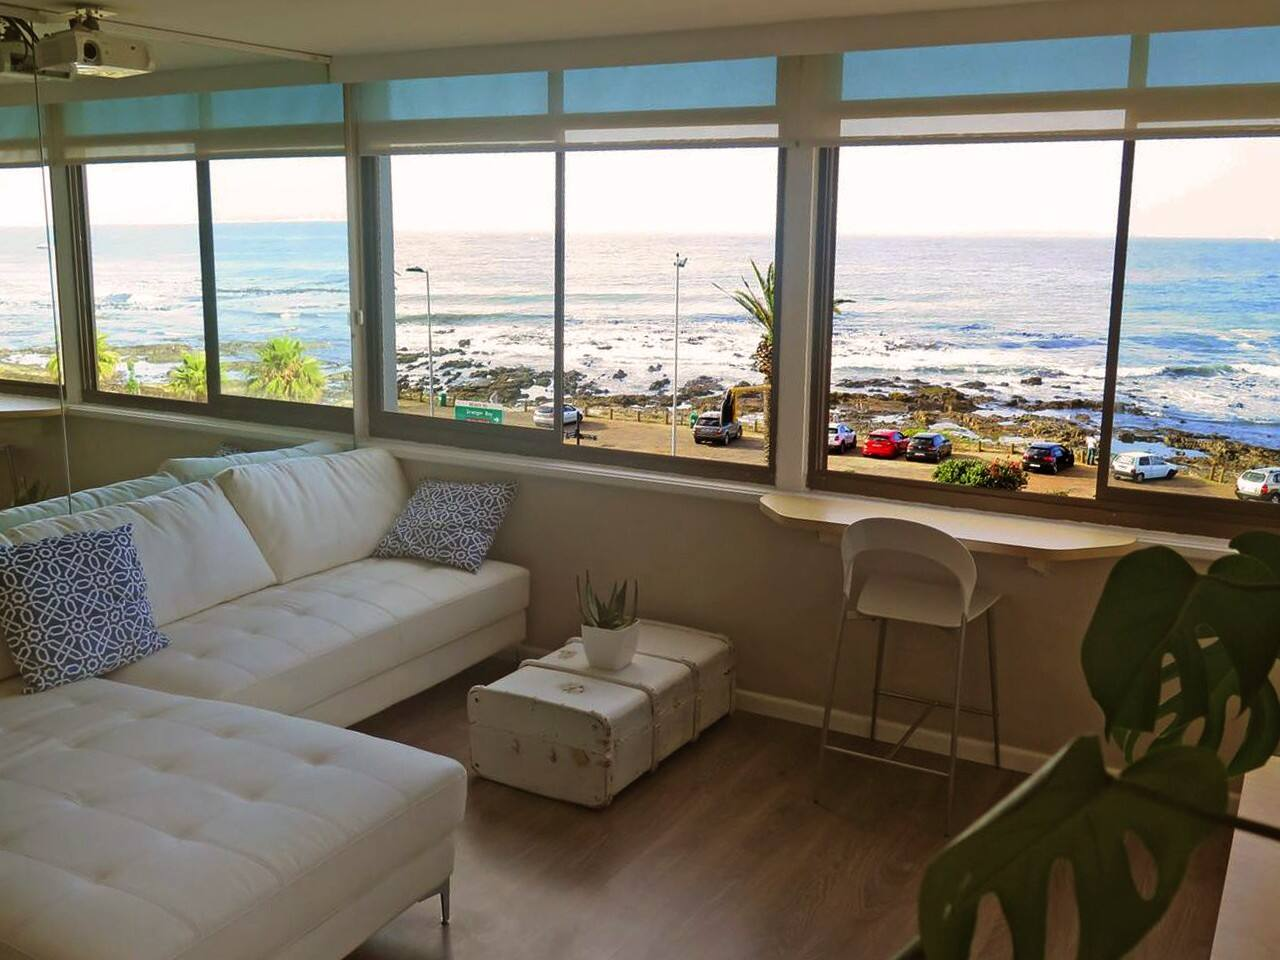 Uninterrupted view of the ocean from any position in the apartment